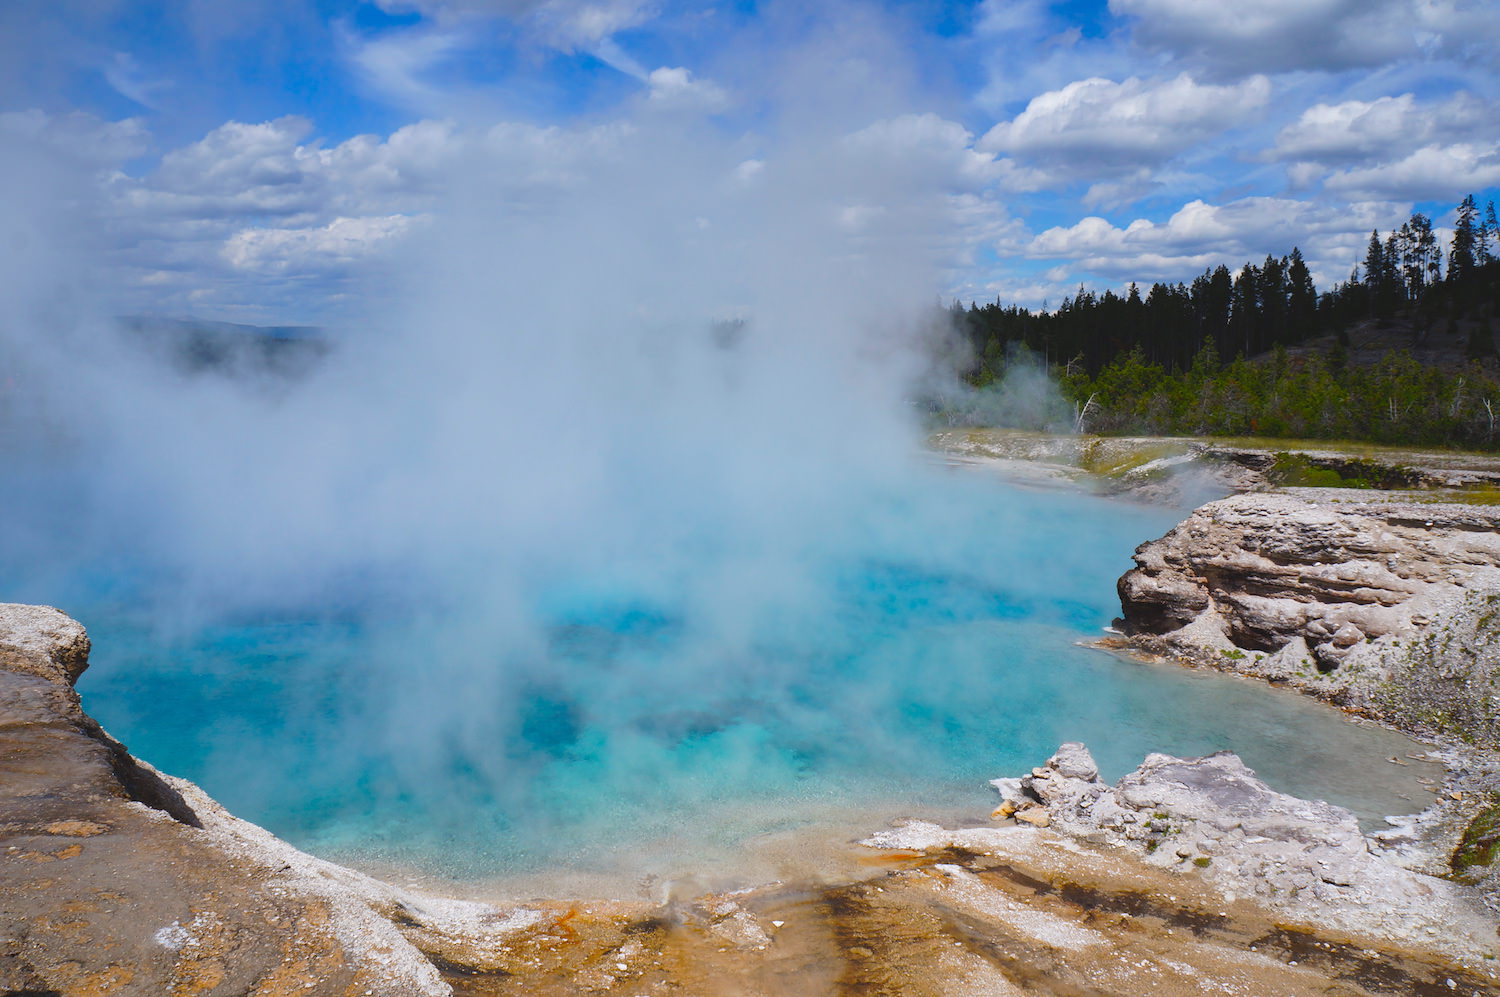 Some of the thermal basins surrounding Grand Prismatic Spring.